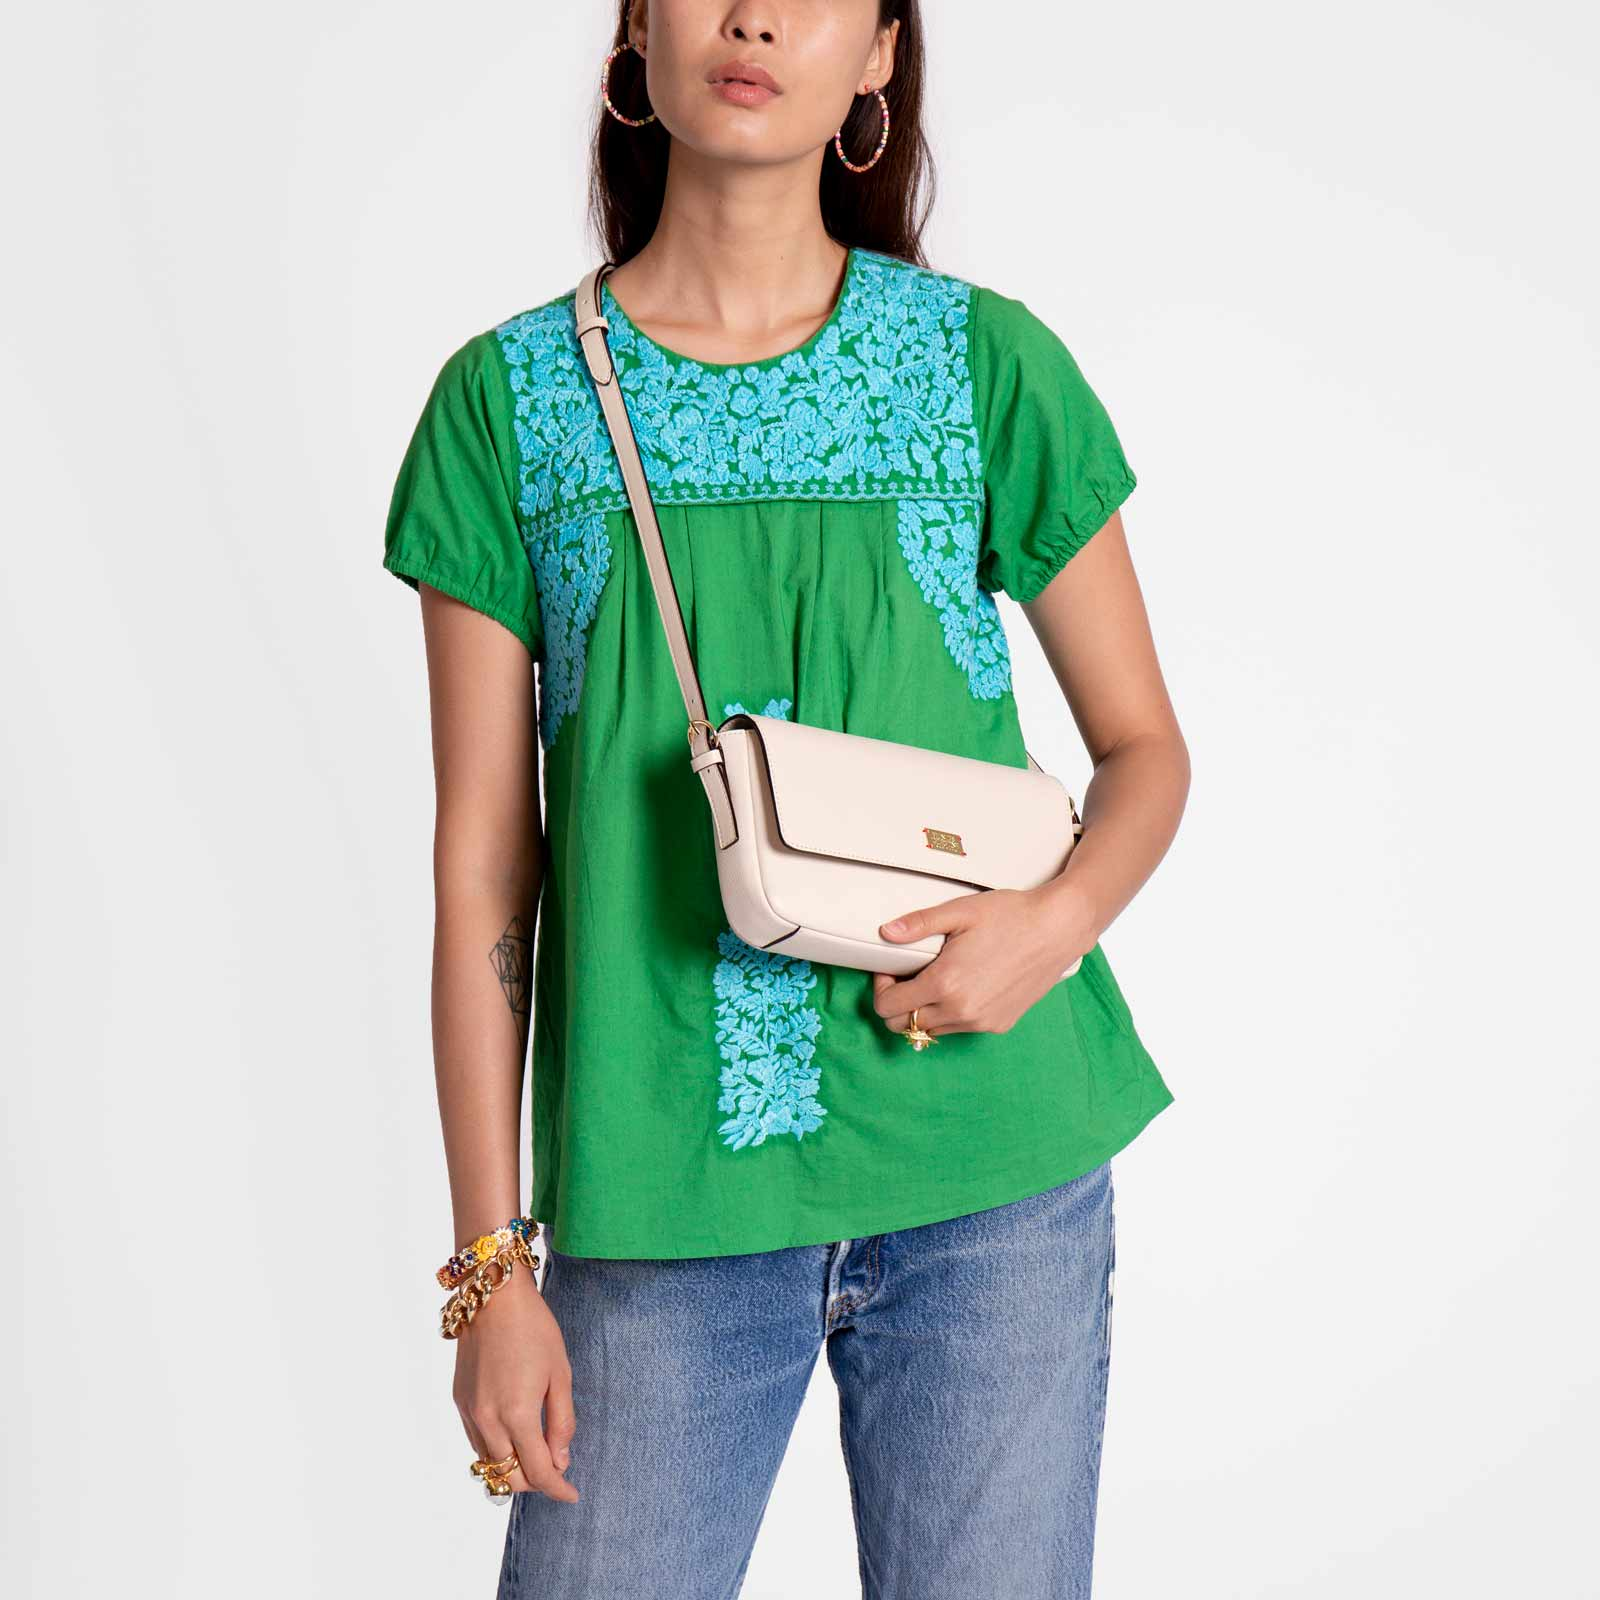 Floral Embroidered Lace Top Green Light Blue